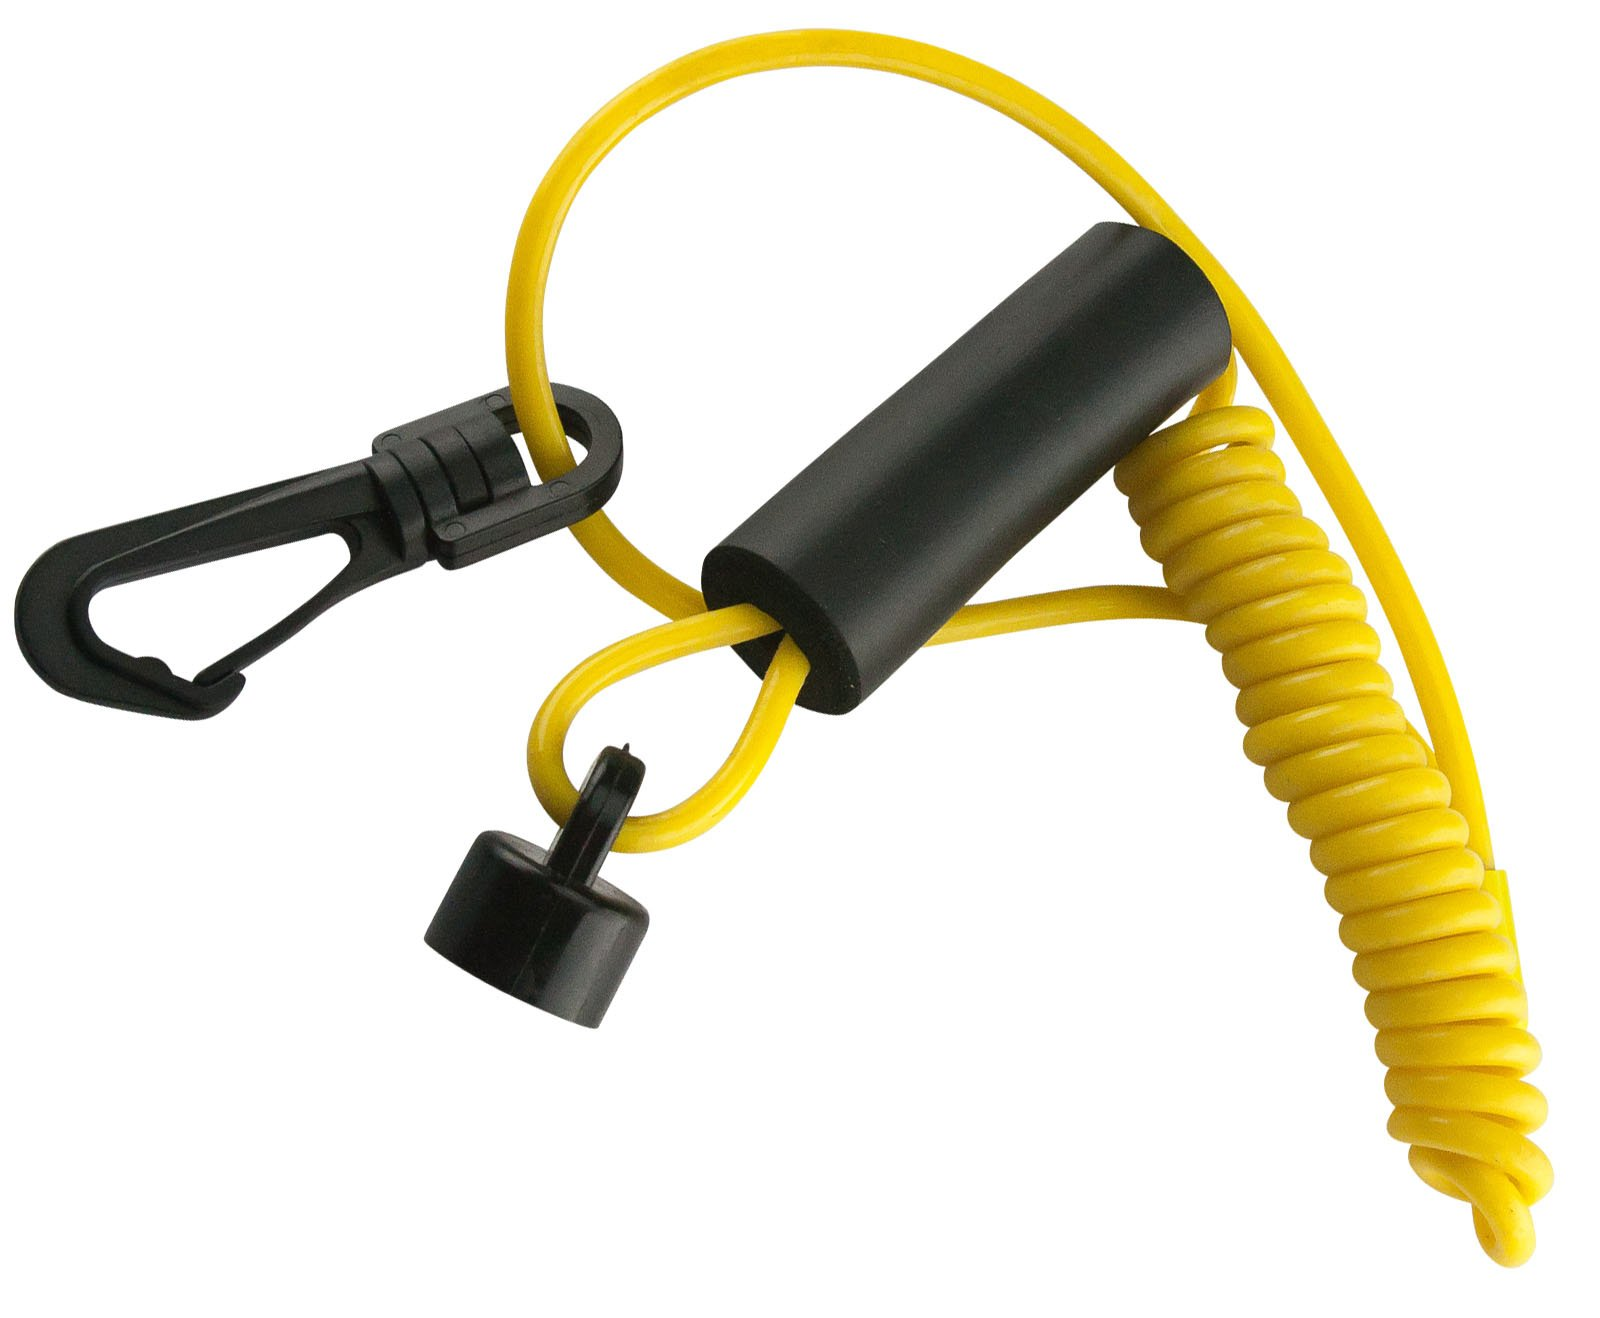 SeaDoo Clip-on Non DESS High-Vis Yellow Lanyard Safety Tether Key New Floating Fits MANY 1988-1996 (For OLDER Style Spring Loaded Switch, NOT for newer style with DESS Security)